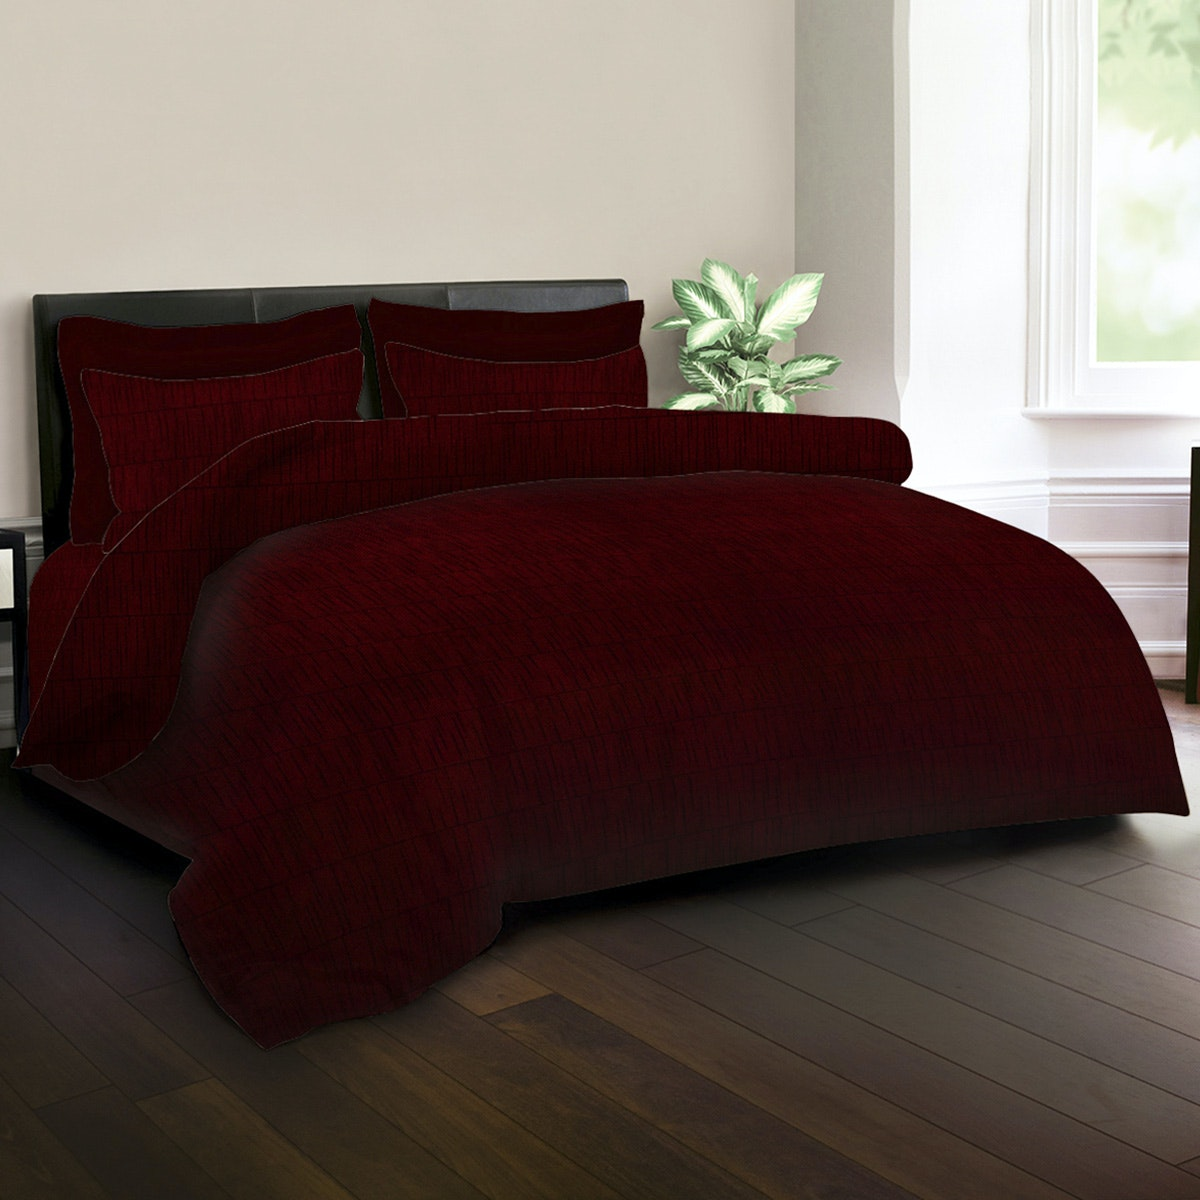 King Rabbit Bed Cover Emerald Red 140x230cm